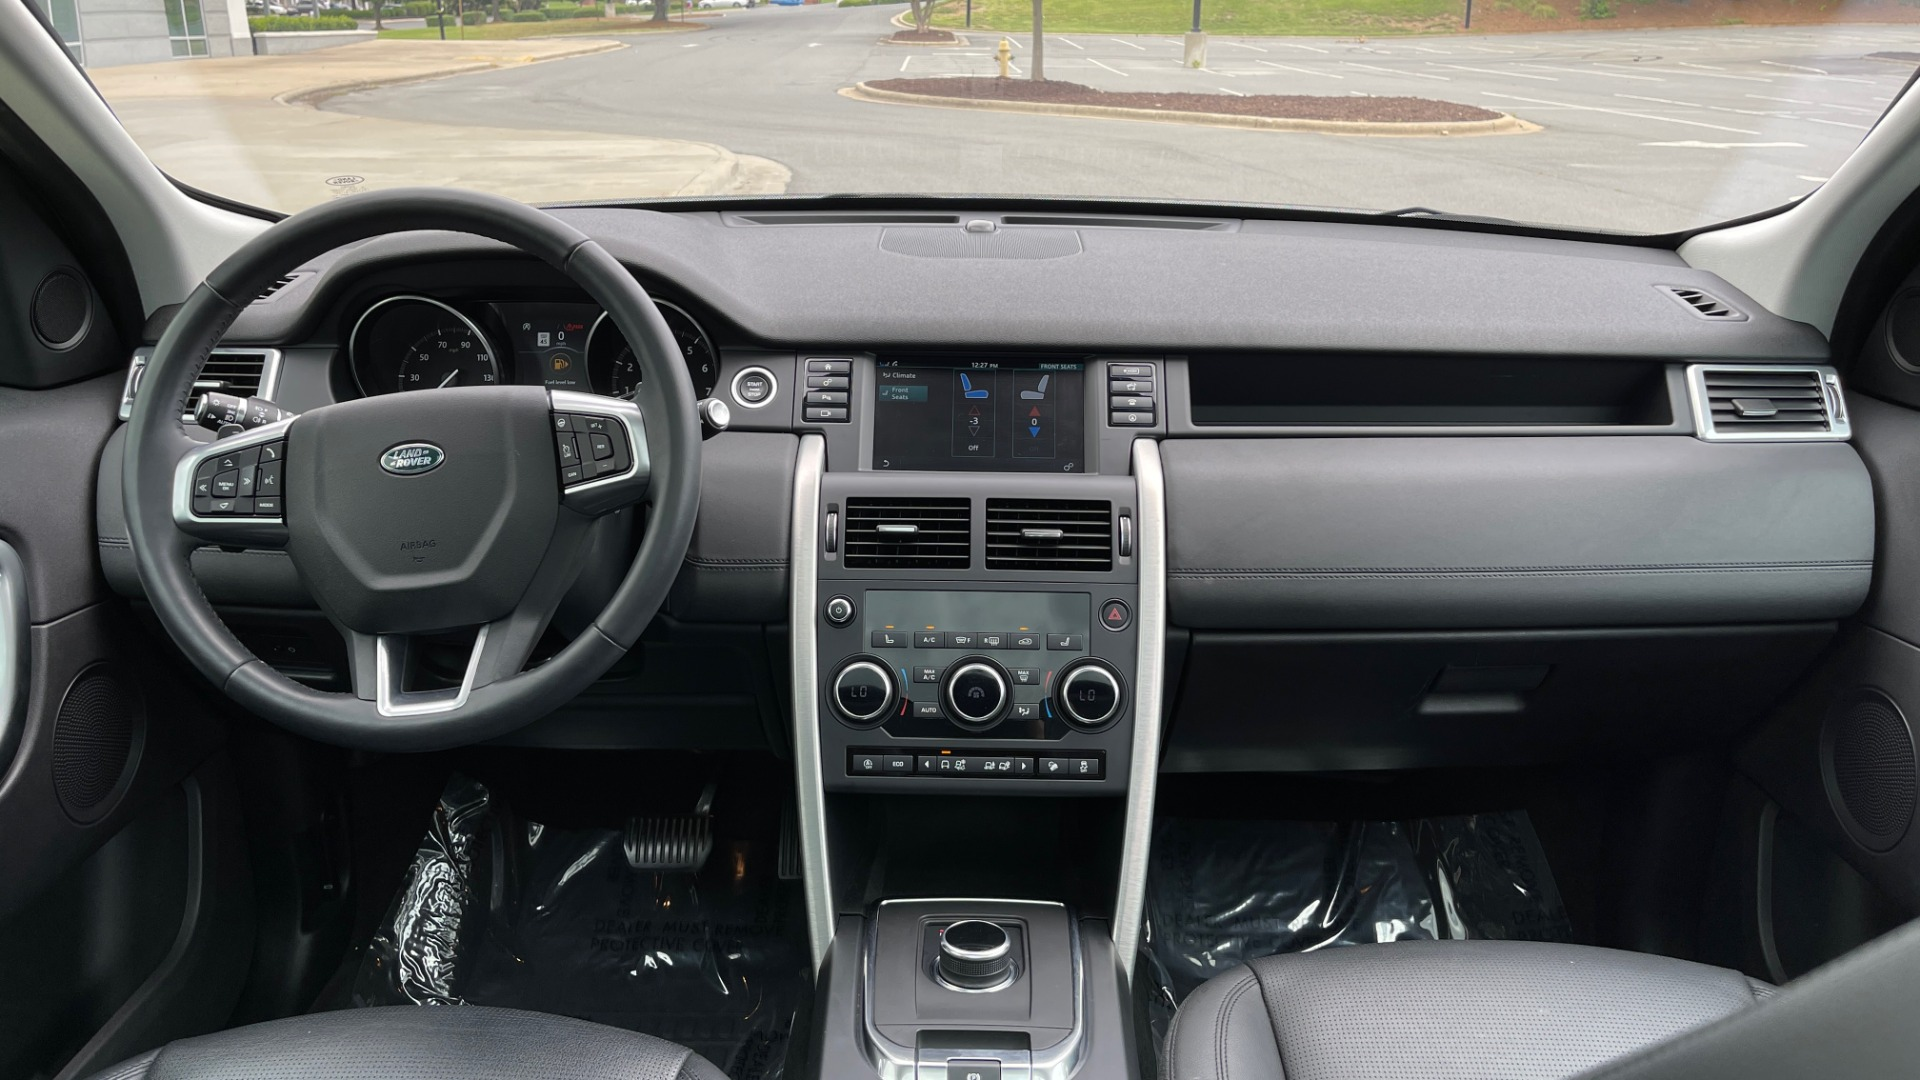 Used 2018 Land Rover DISCOVERY SPORT HSE 4WD / NAV / PANO-ROOF / MERIDIAN SND / HTD STS / LANE ASST / REARVIEW for sale $34,995 at Formula Imports in Charlotte NC 28227 68